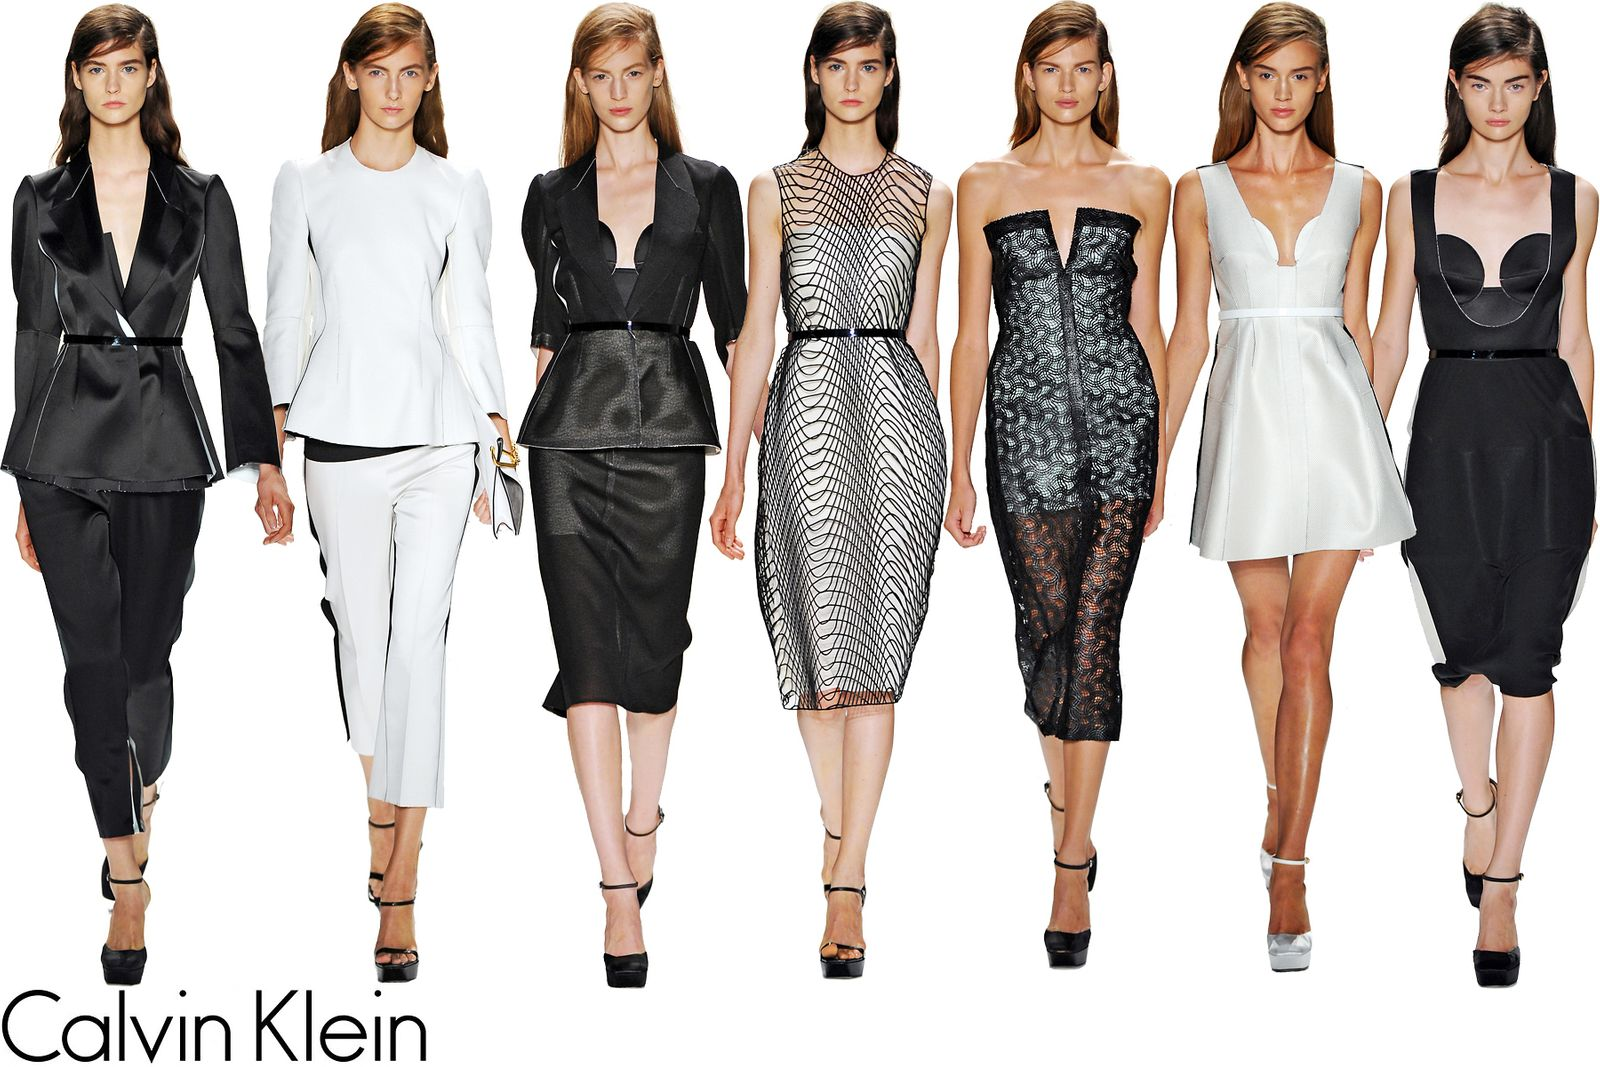 Calvin Klein Spring/Summer 2013 Collection